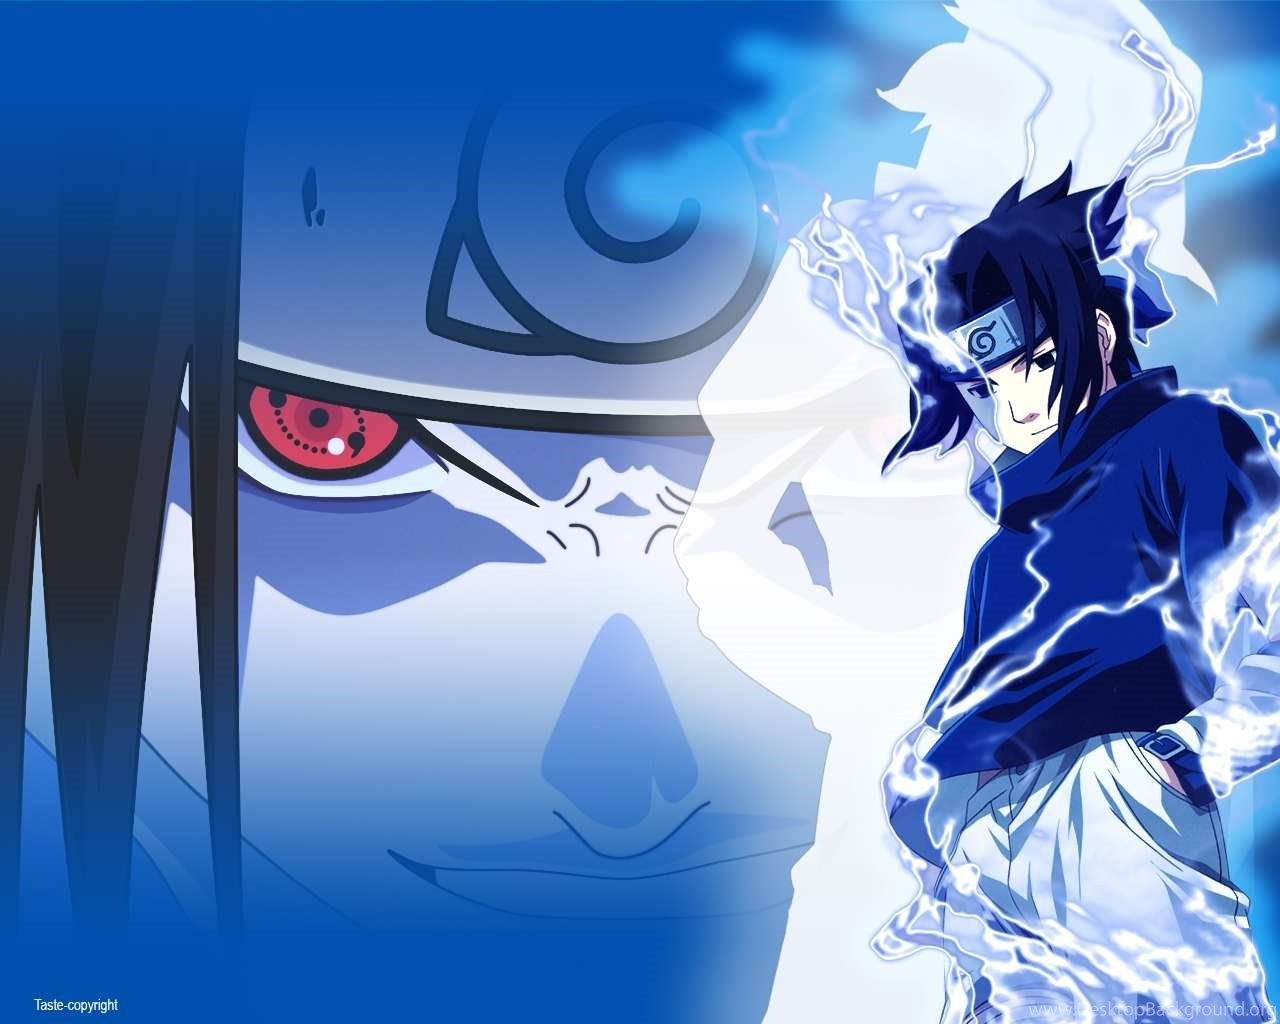 611229 naruto wallpapers shippuden 3d 2 high definition